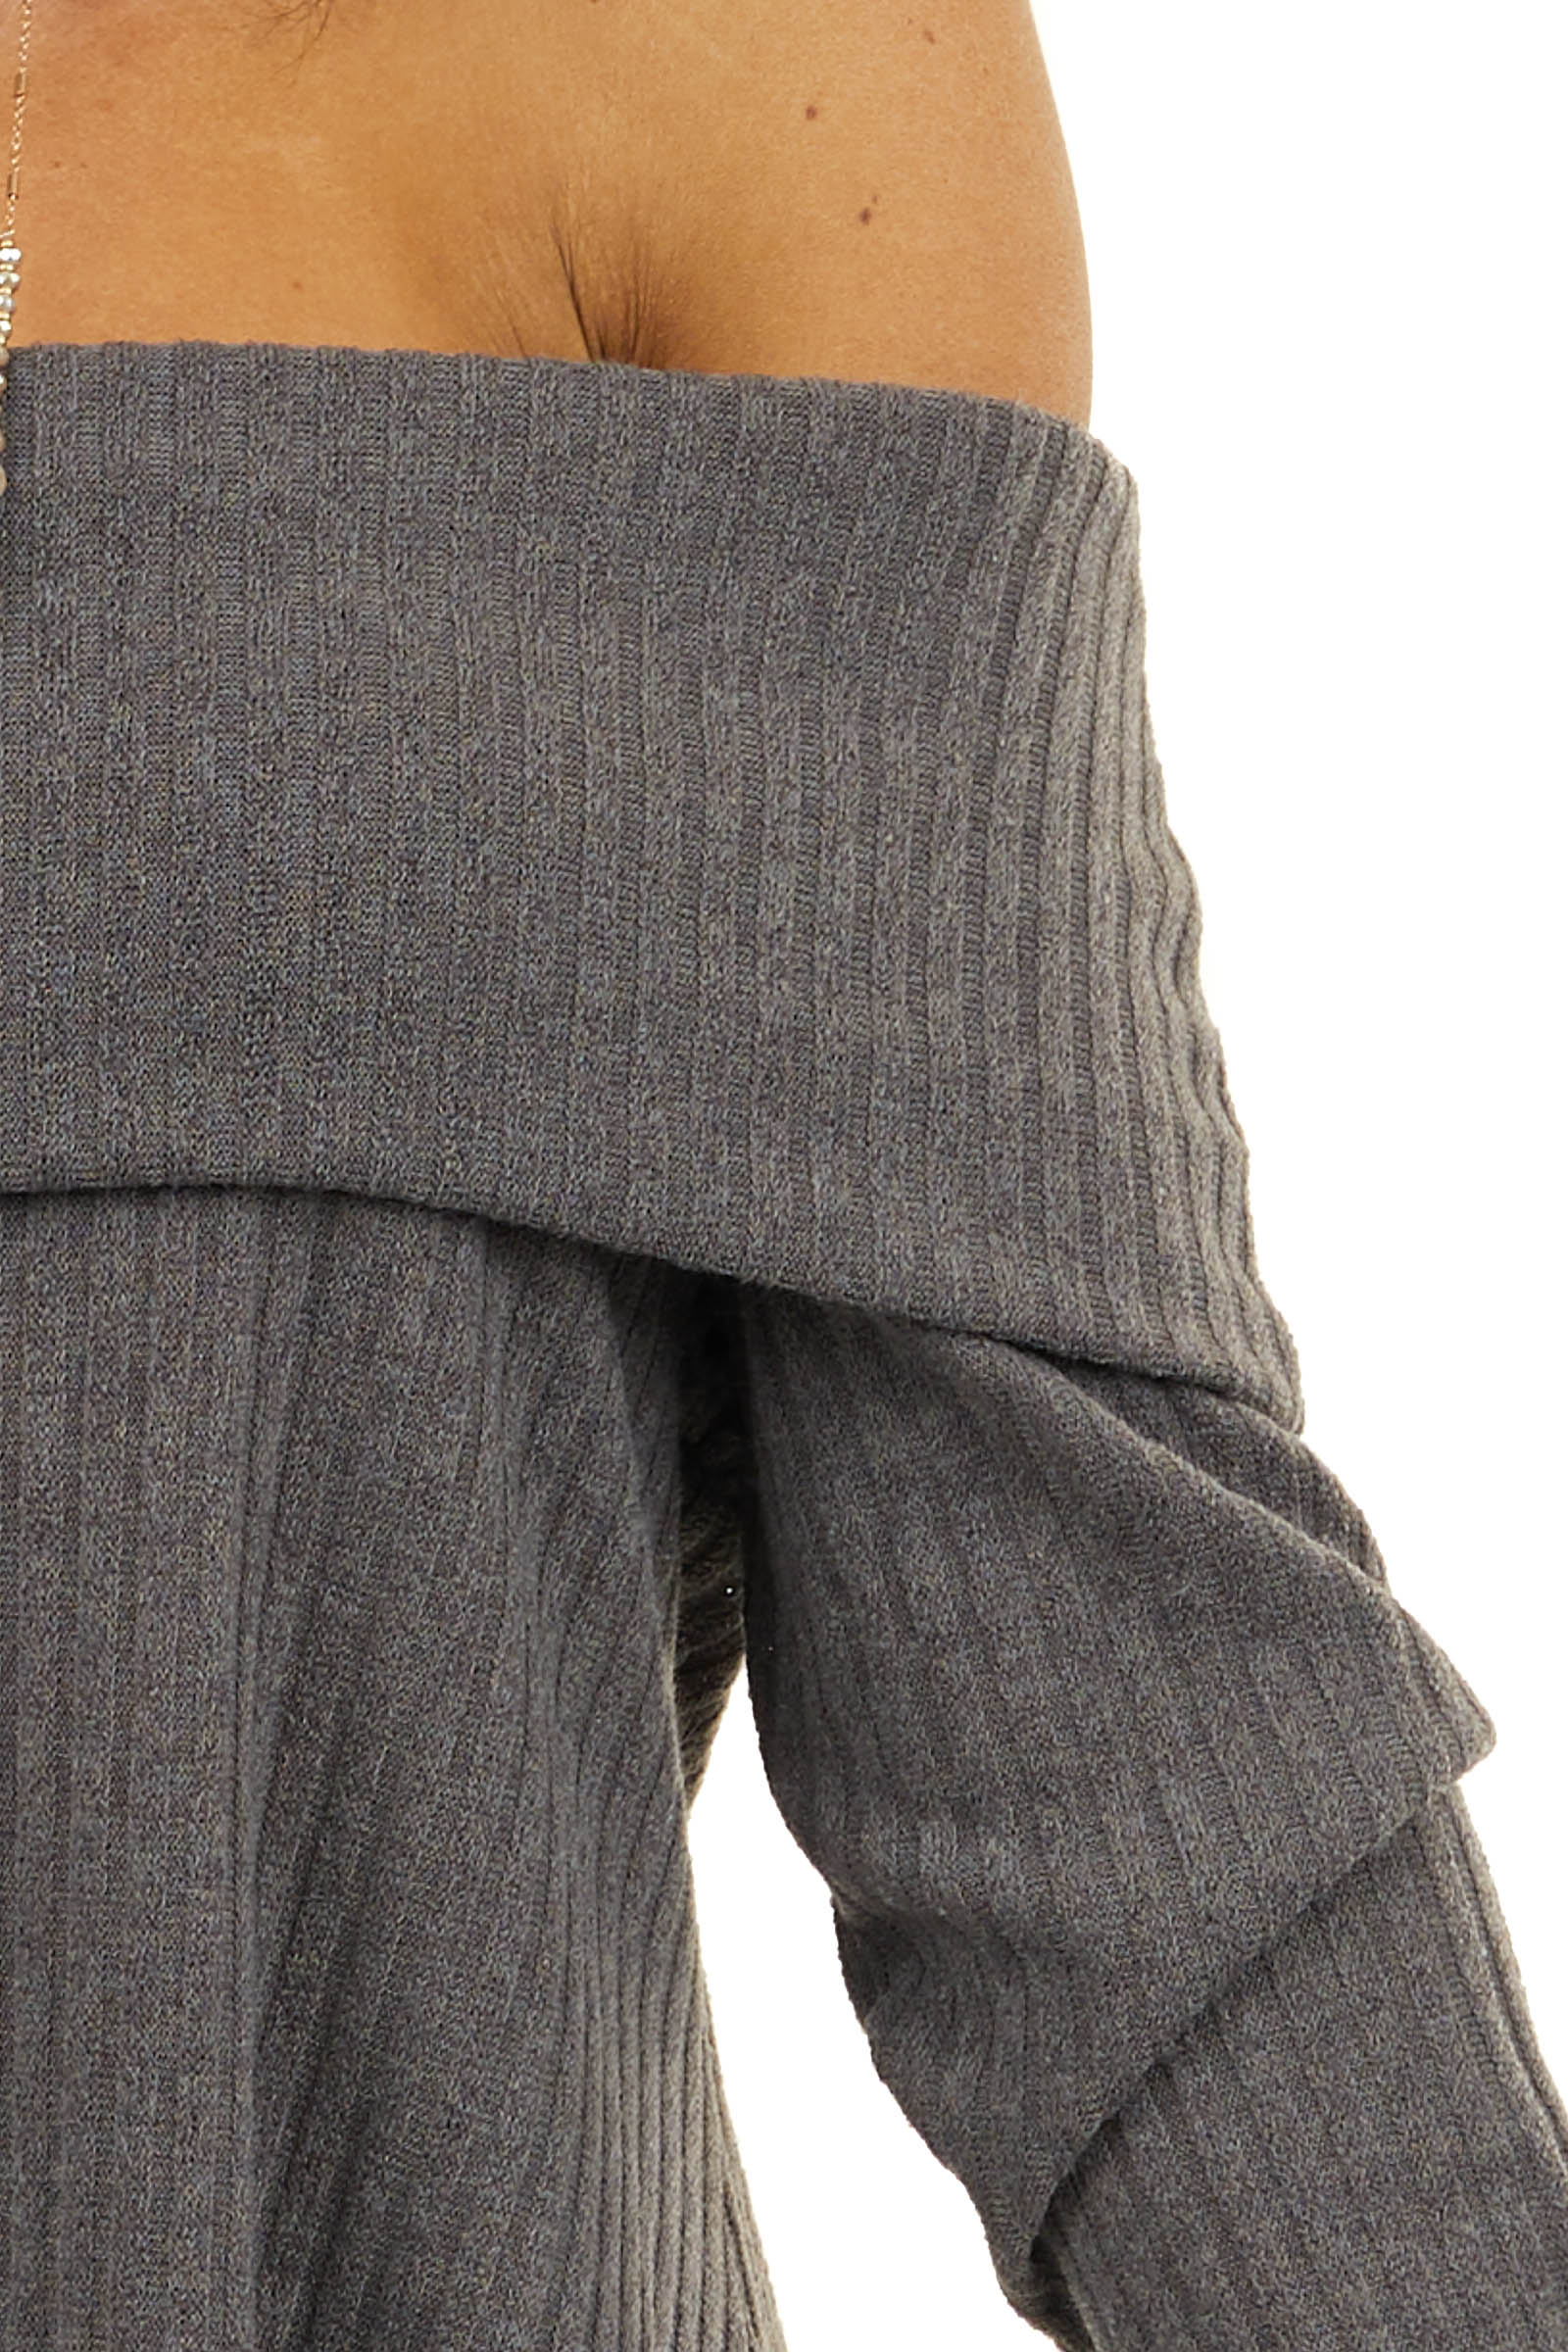 Mocha Folded Off the Shoulder Ribbed Top with Long Sleeves